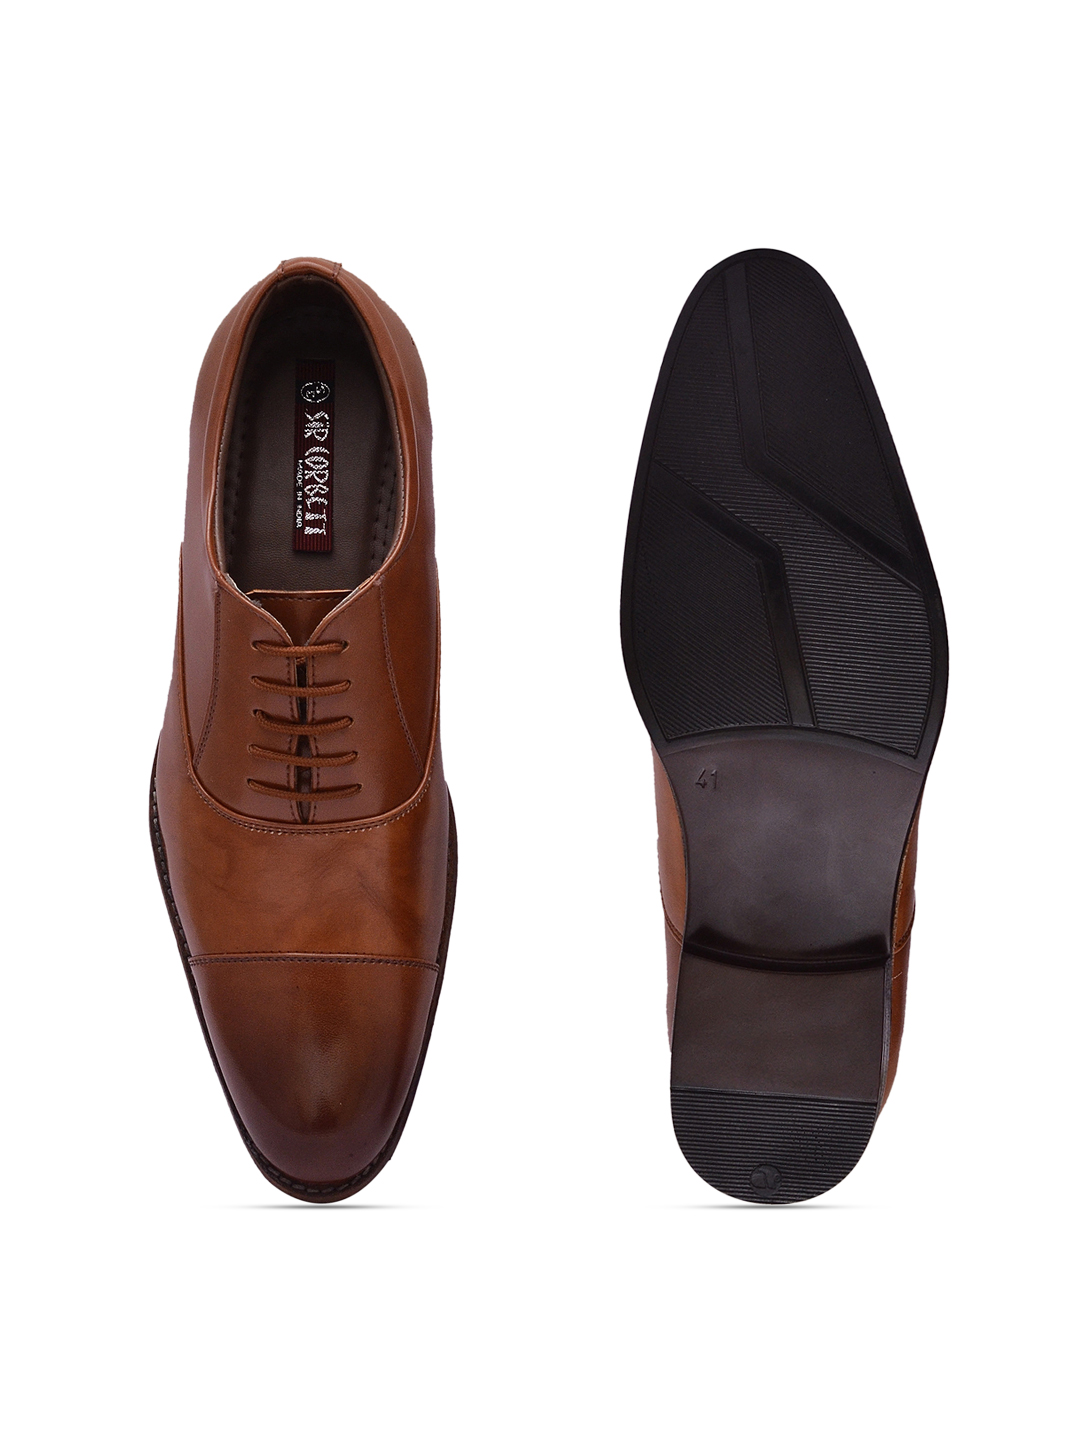 formal shoes for men - buy menu0027s formal shoes online | myntra ejtwcha